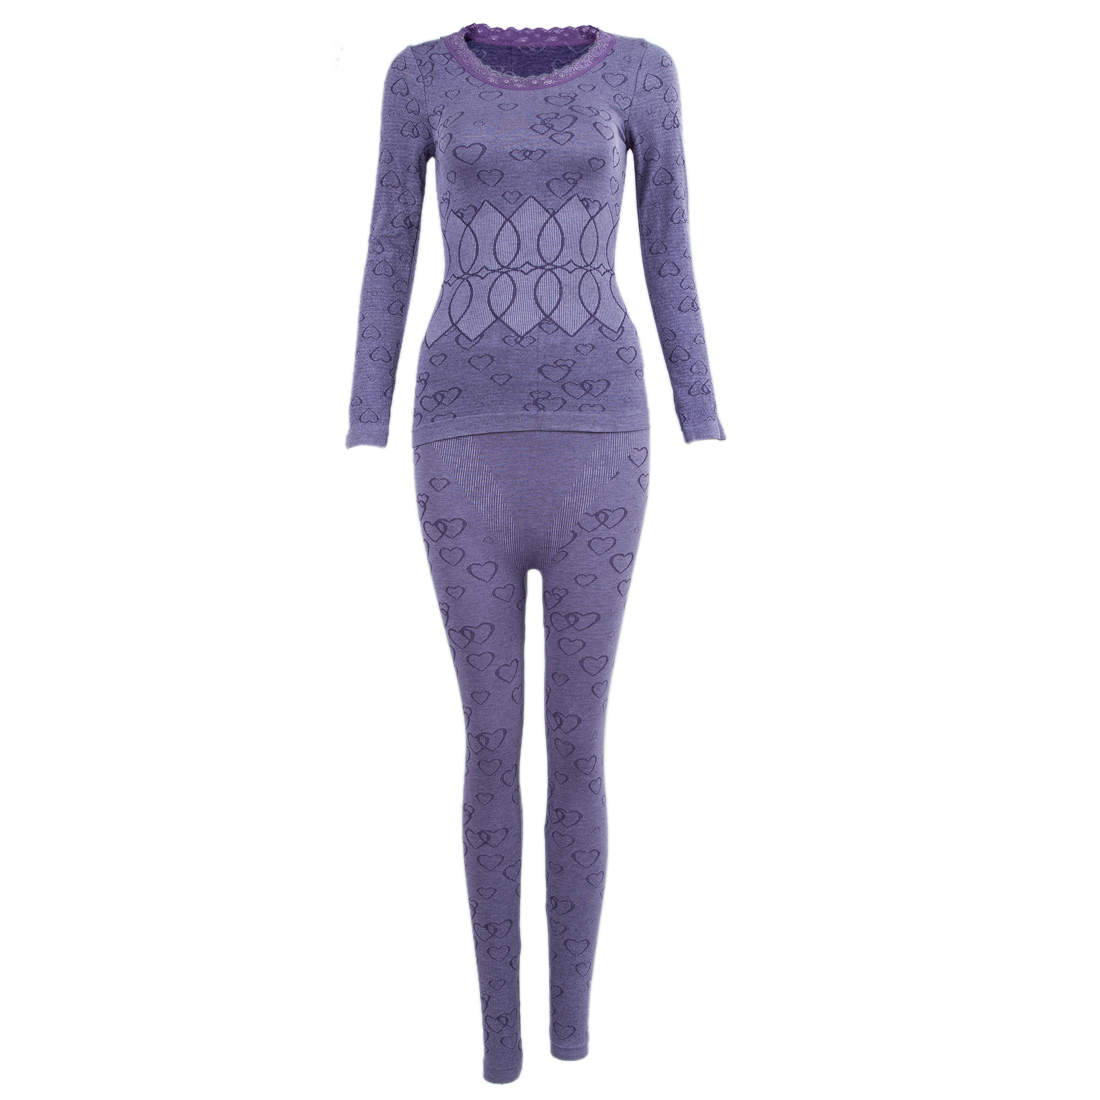 Women Round Neck Thermal Set Winter Tops&Pants Long Johns Pajama Sets Purple